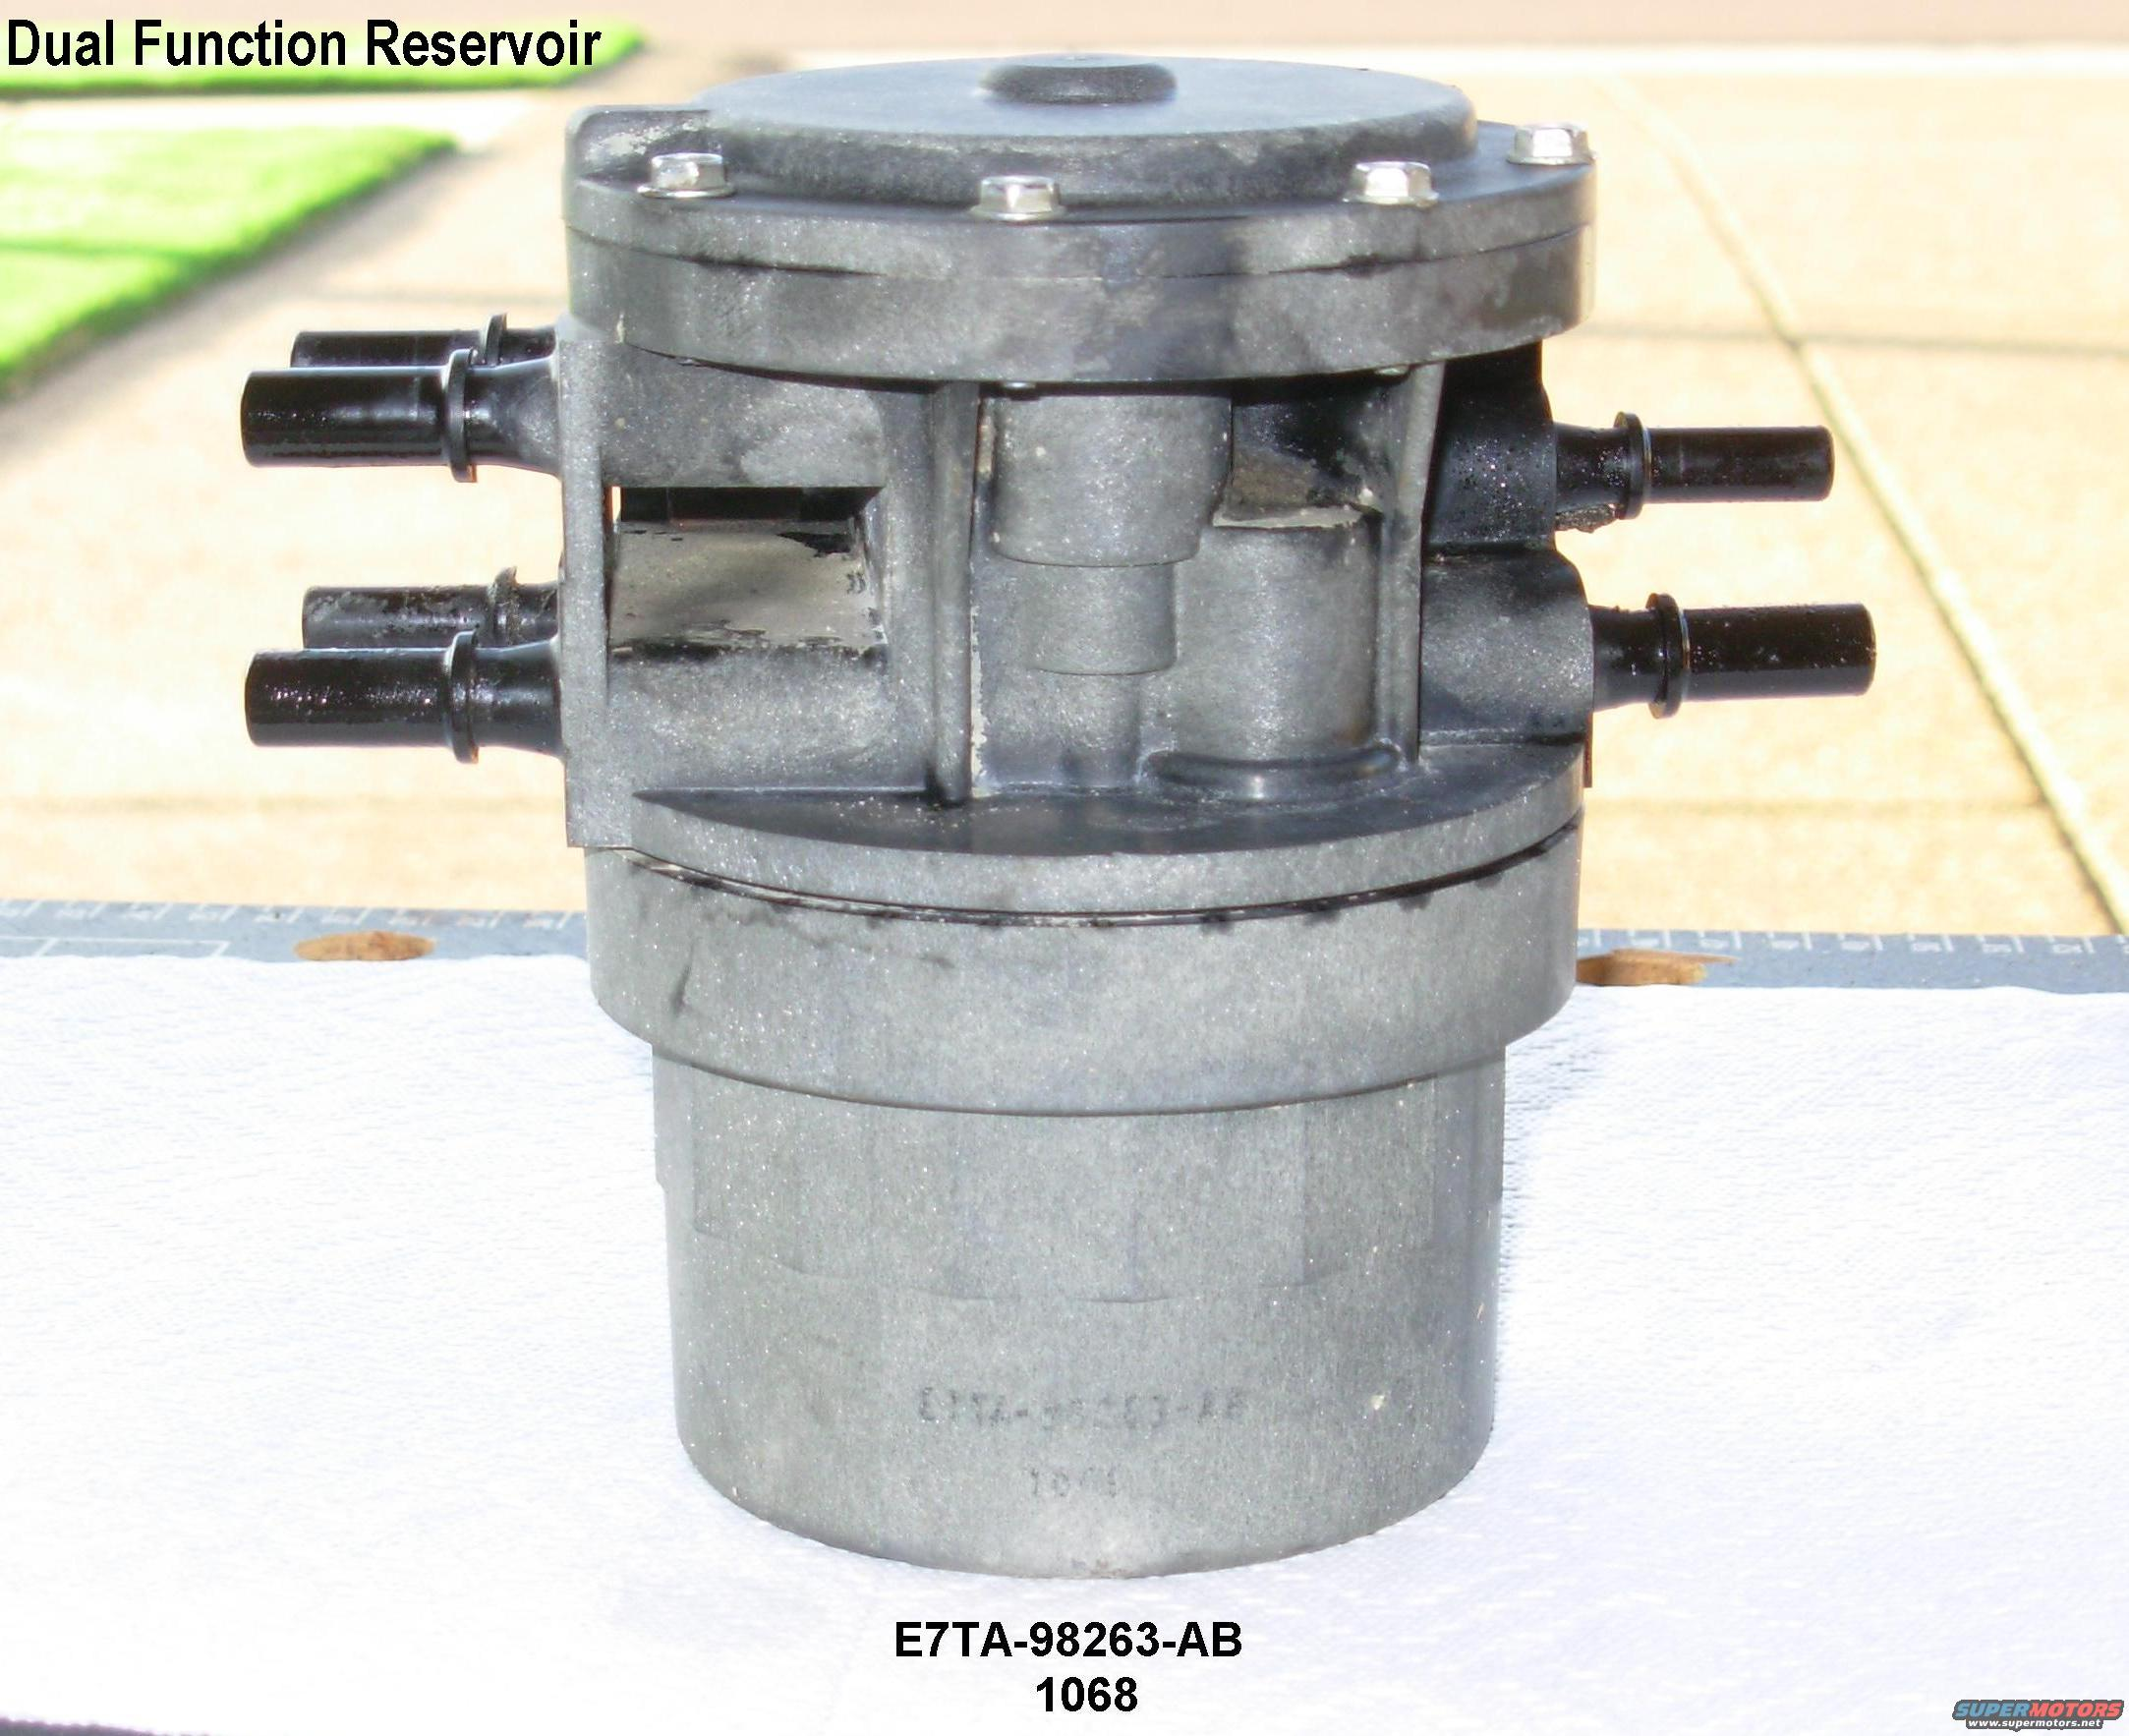 Ford Bronco 84 89 Fuel Reservoirs Picture